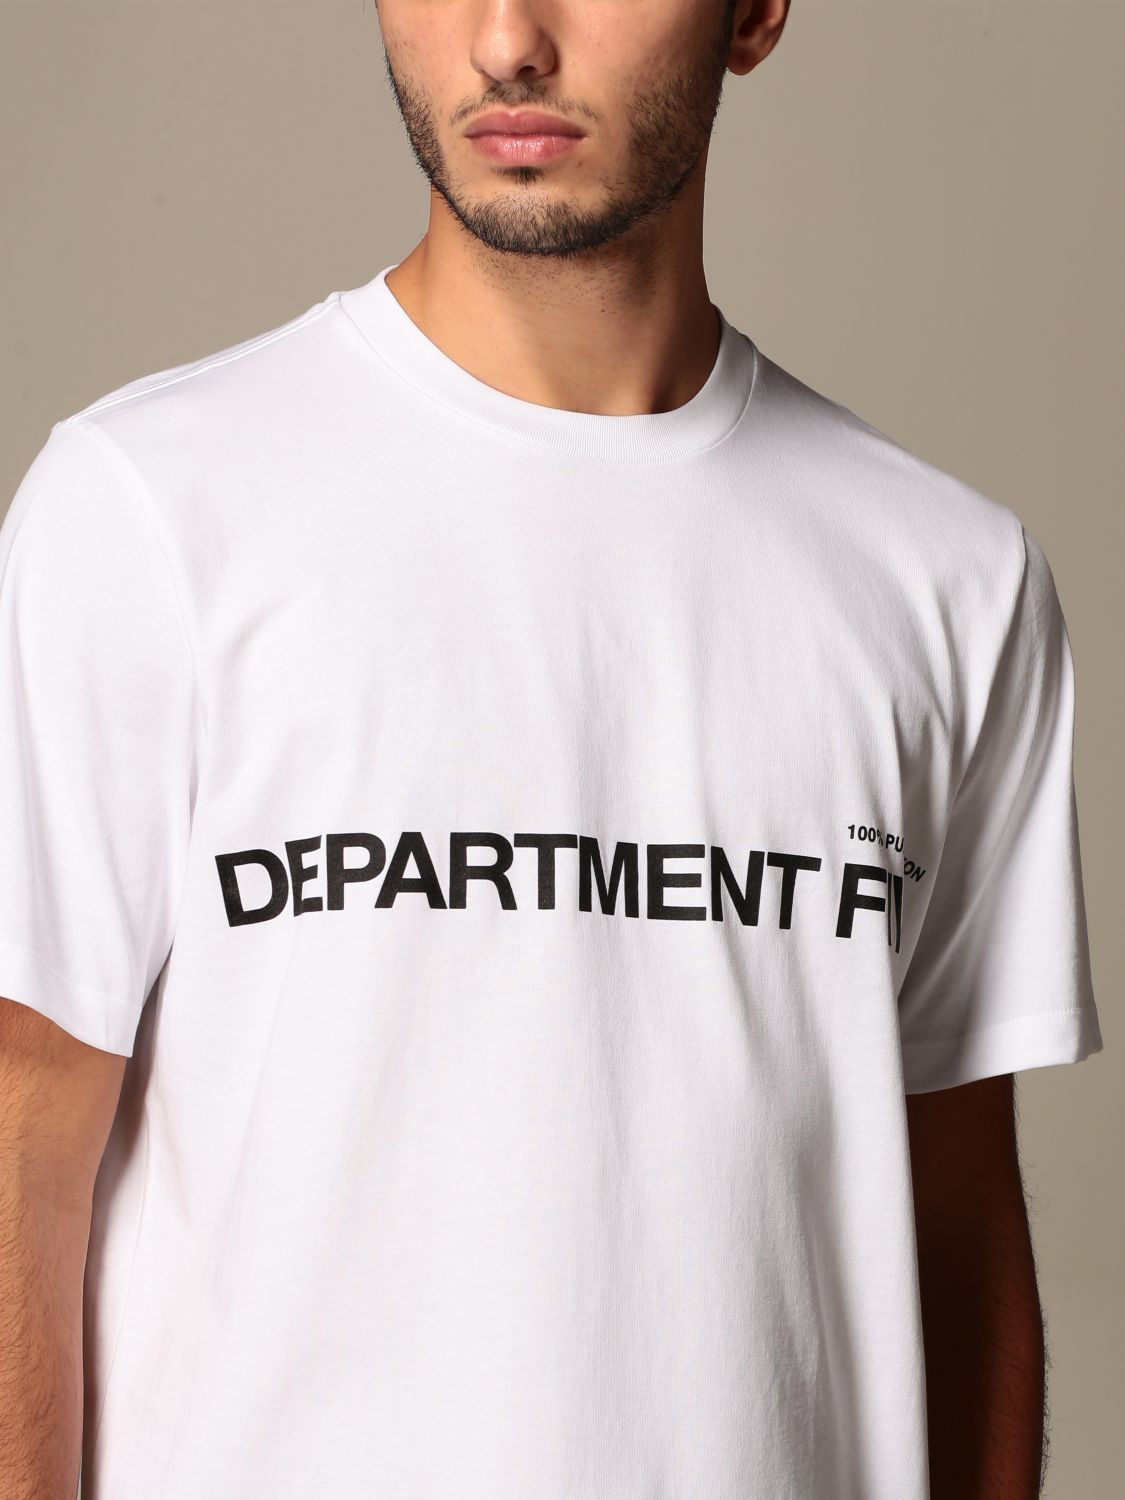 Camiseta Department 5: Camiseta hombre Department 5 blanco 3